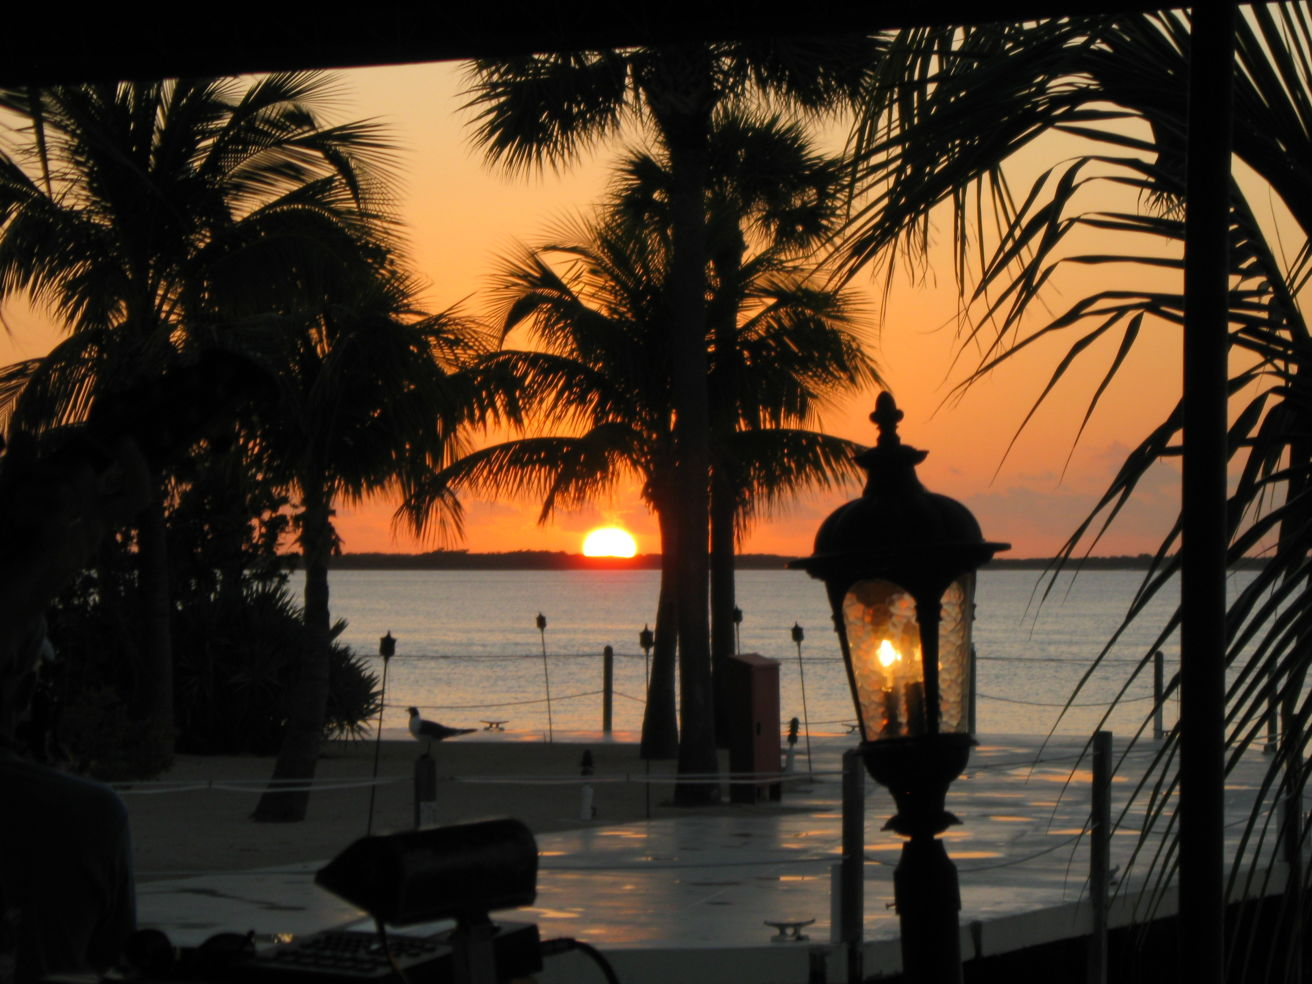 Sunset in Key Largo, Florida